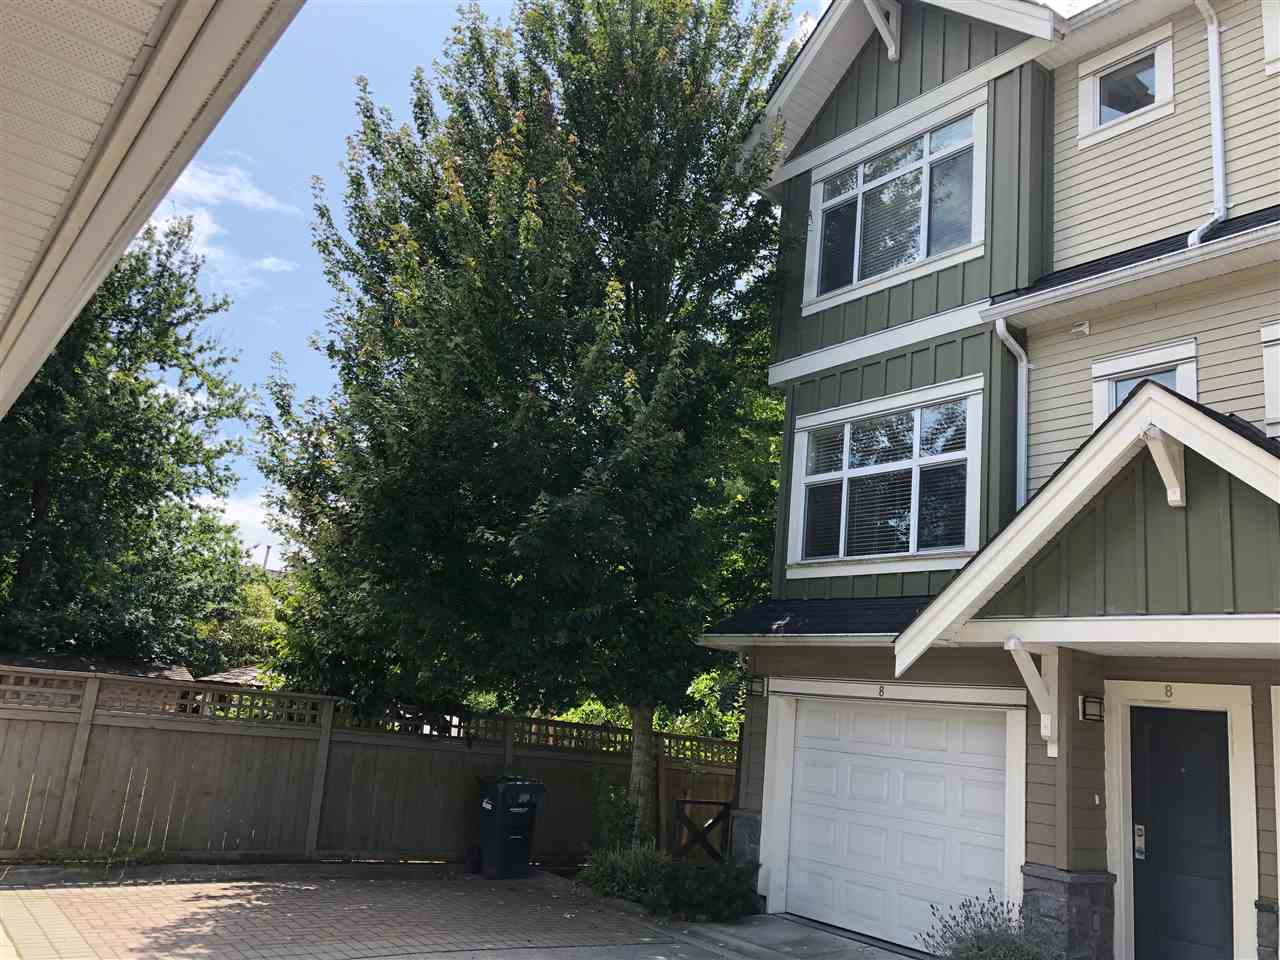 8 9888 KEEFER AVENUE, 3 bed, 3 bath, at $838,000